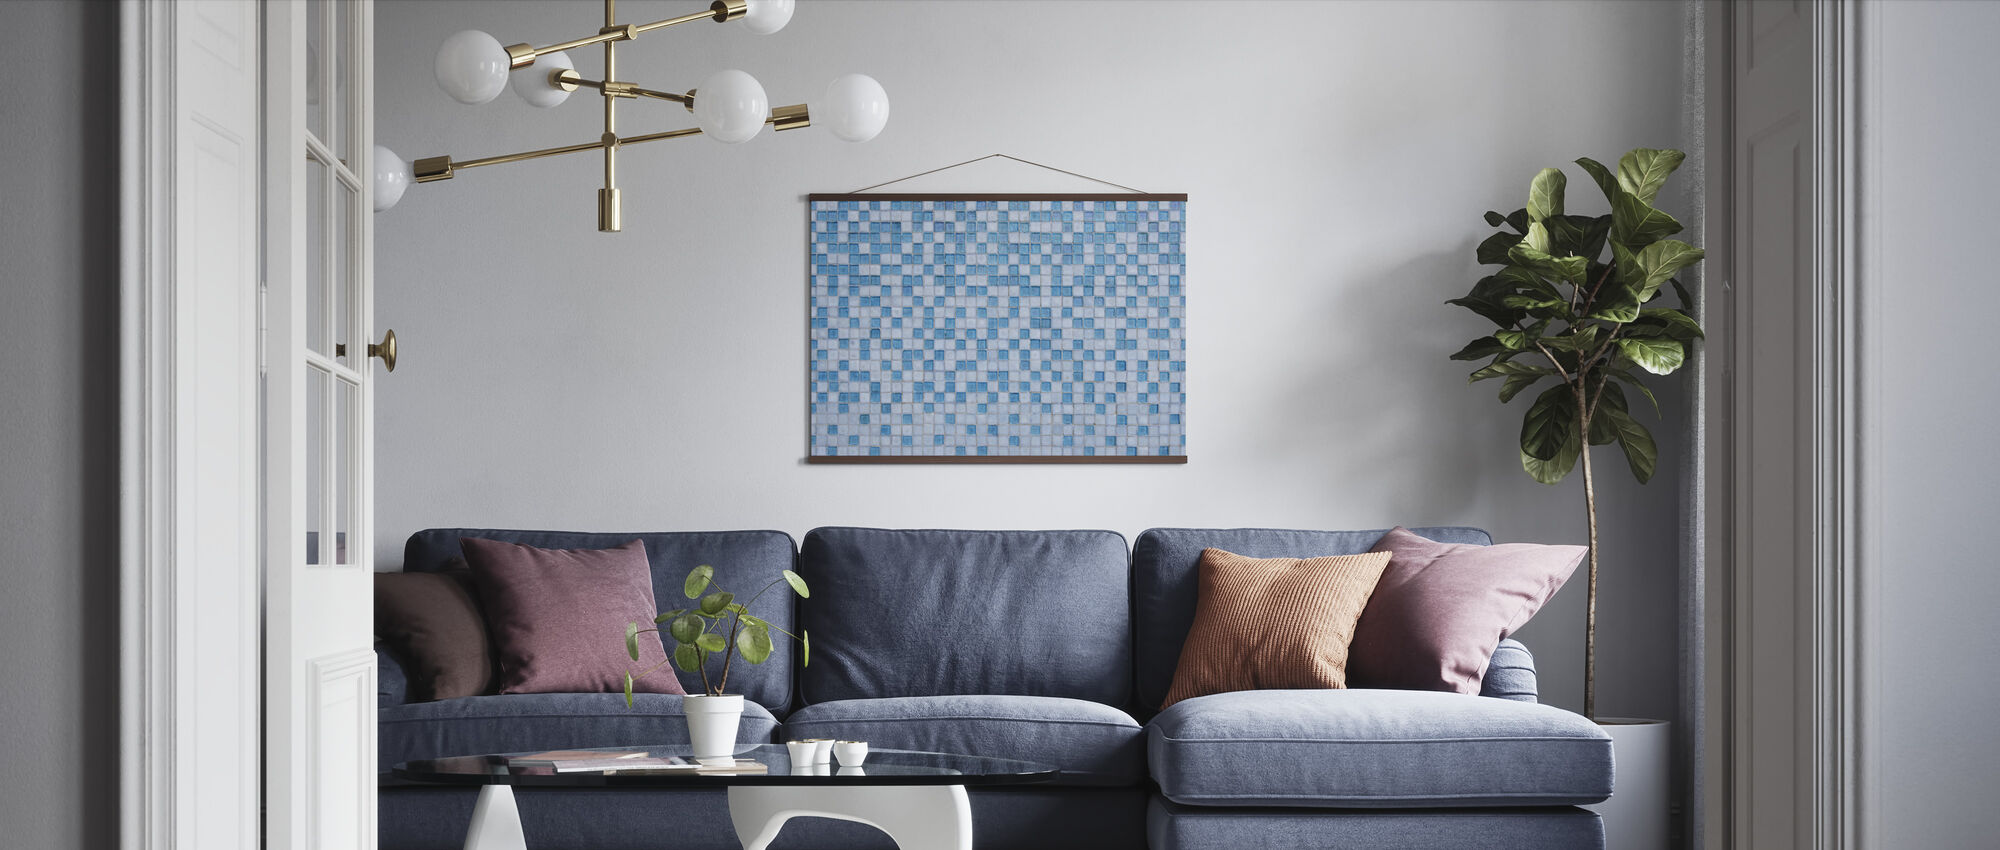 Miami Mosaic - Poster - Living Room